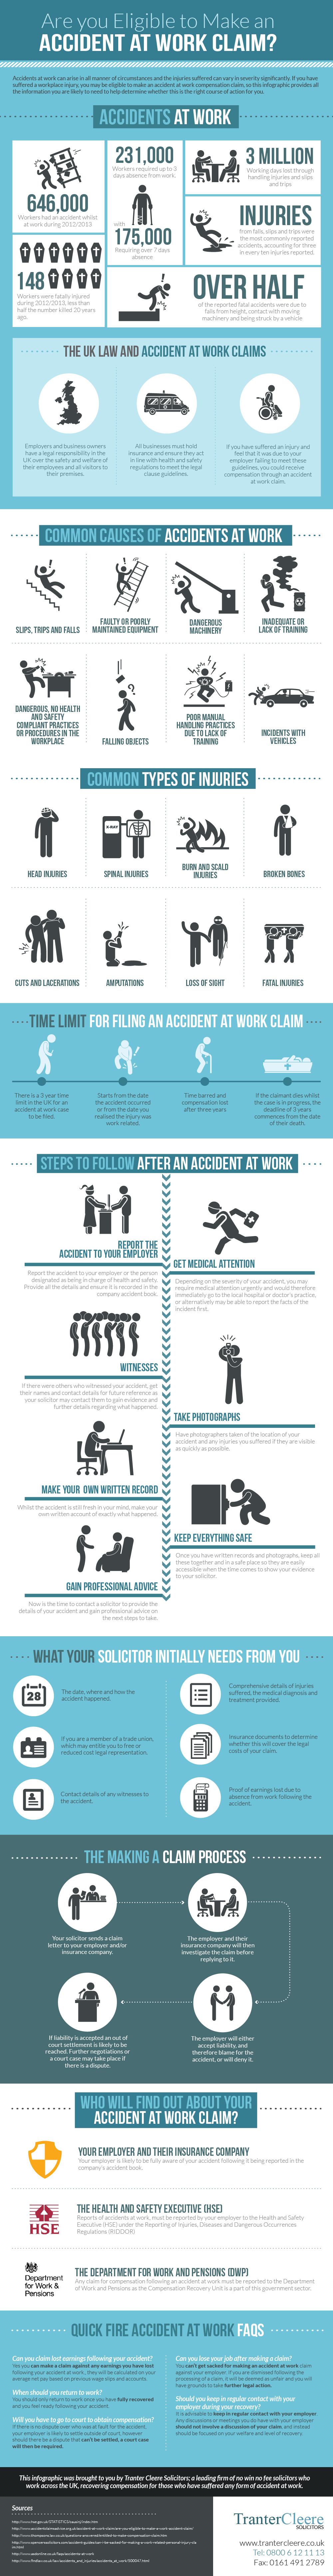 What To Do If You Have An Accident At Work - Tranter Cleere